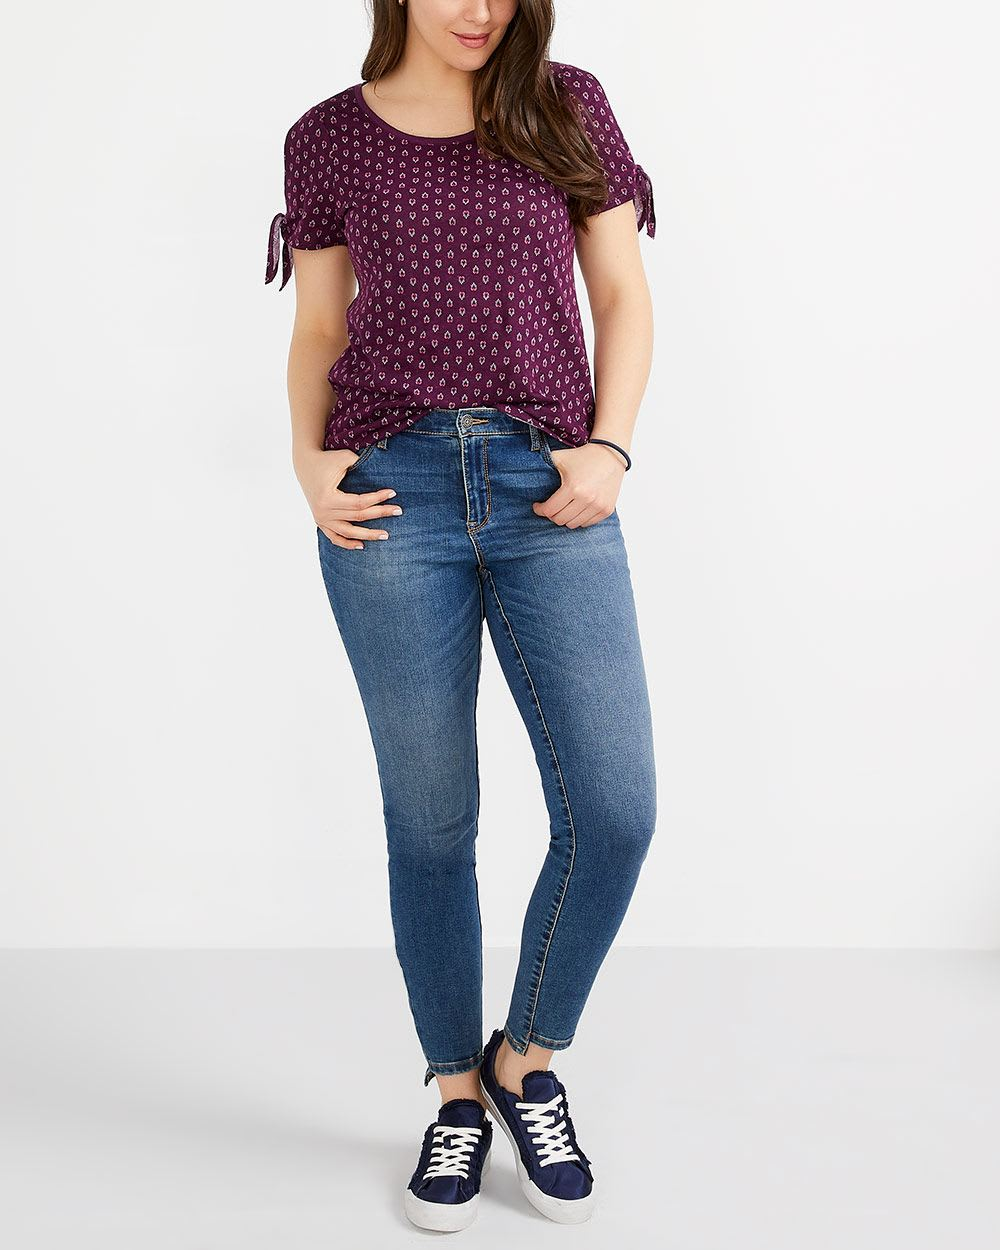 Short Sleeve Printed Top